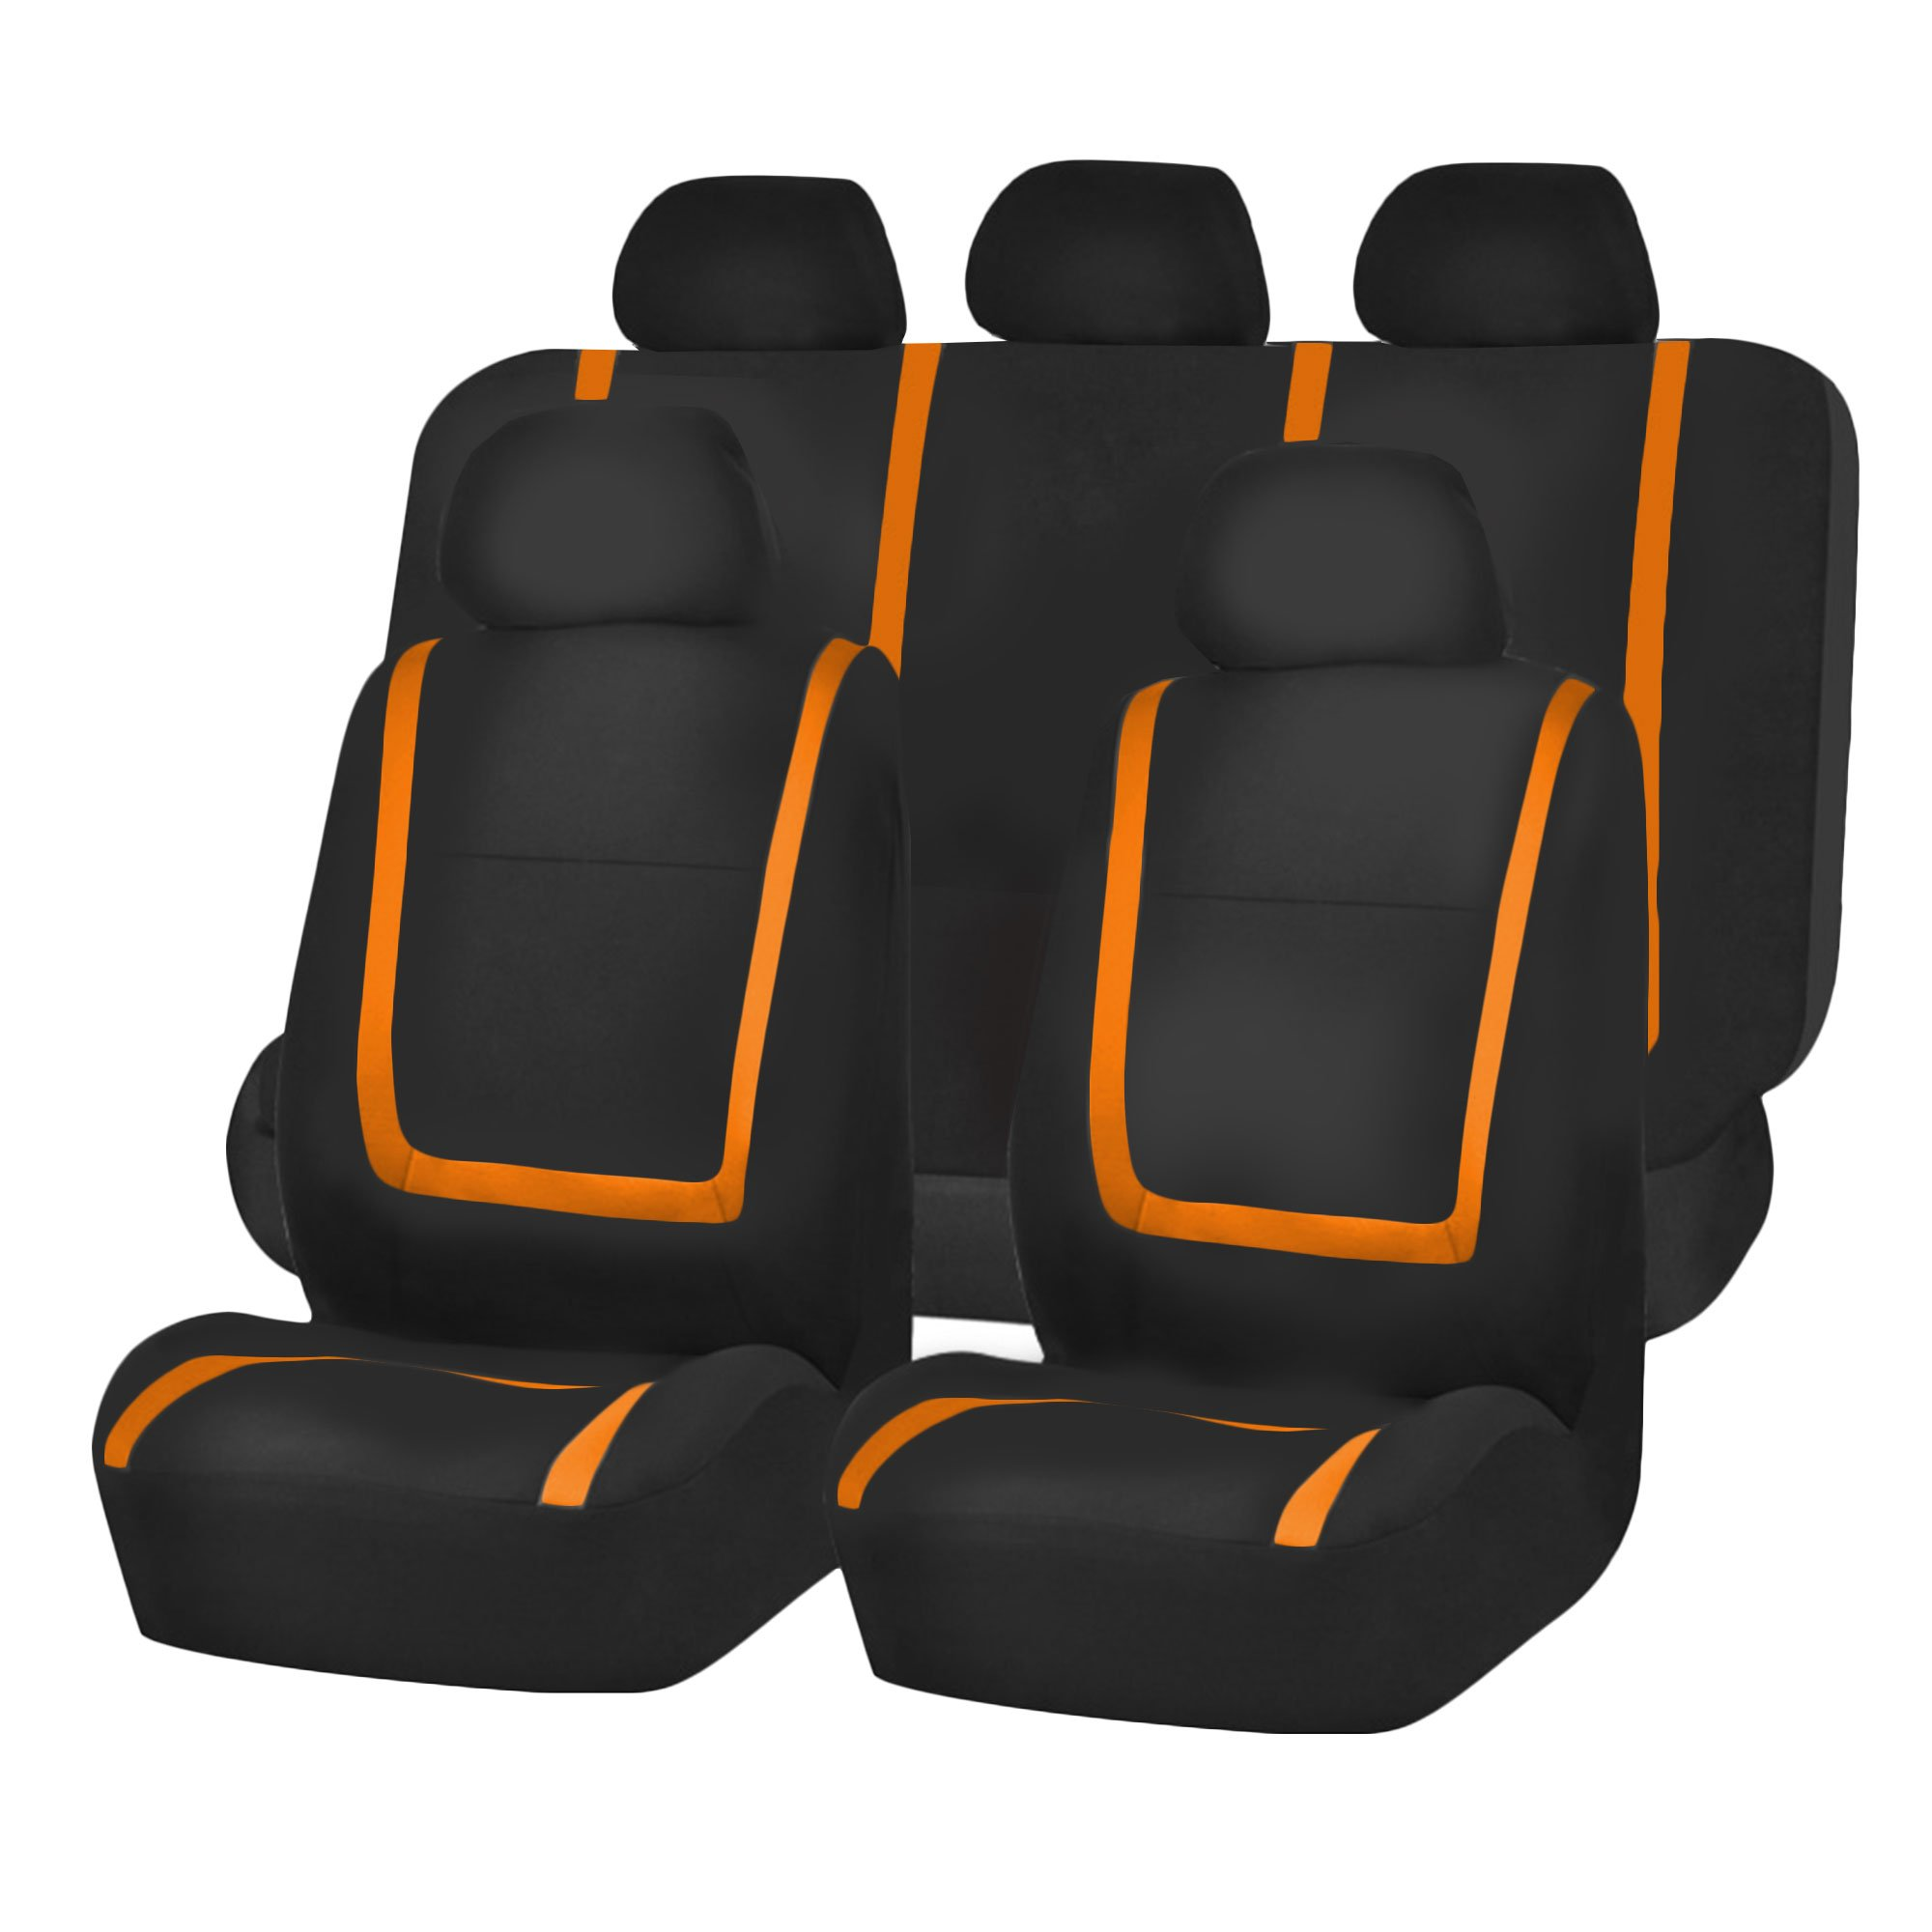 FH Group FH-FB032115 Unique Flat Cloth Seat Cover w. 5 Detachable Headrests and Solid Bench Orange/Black- Fit Most Car, Truck, SUV, or Van by FH Group